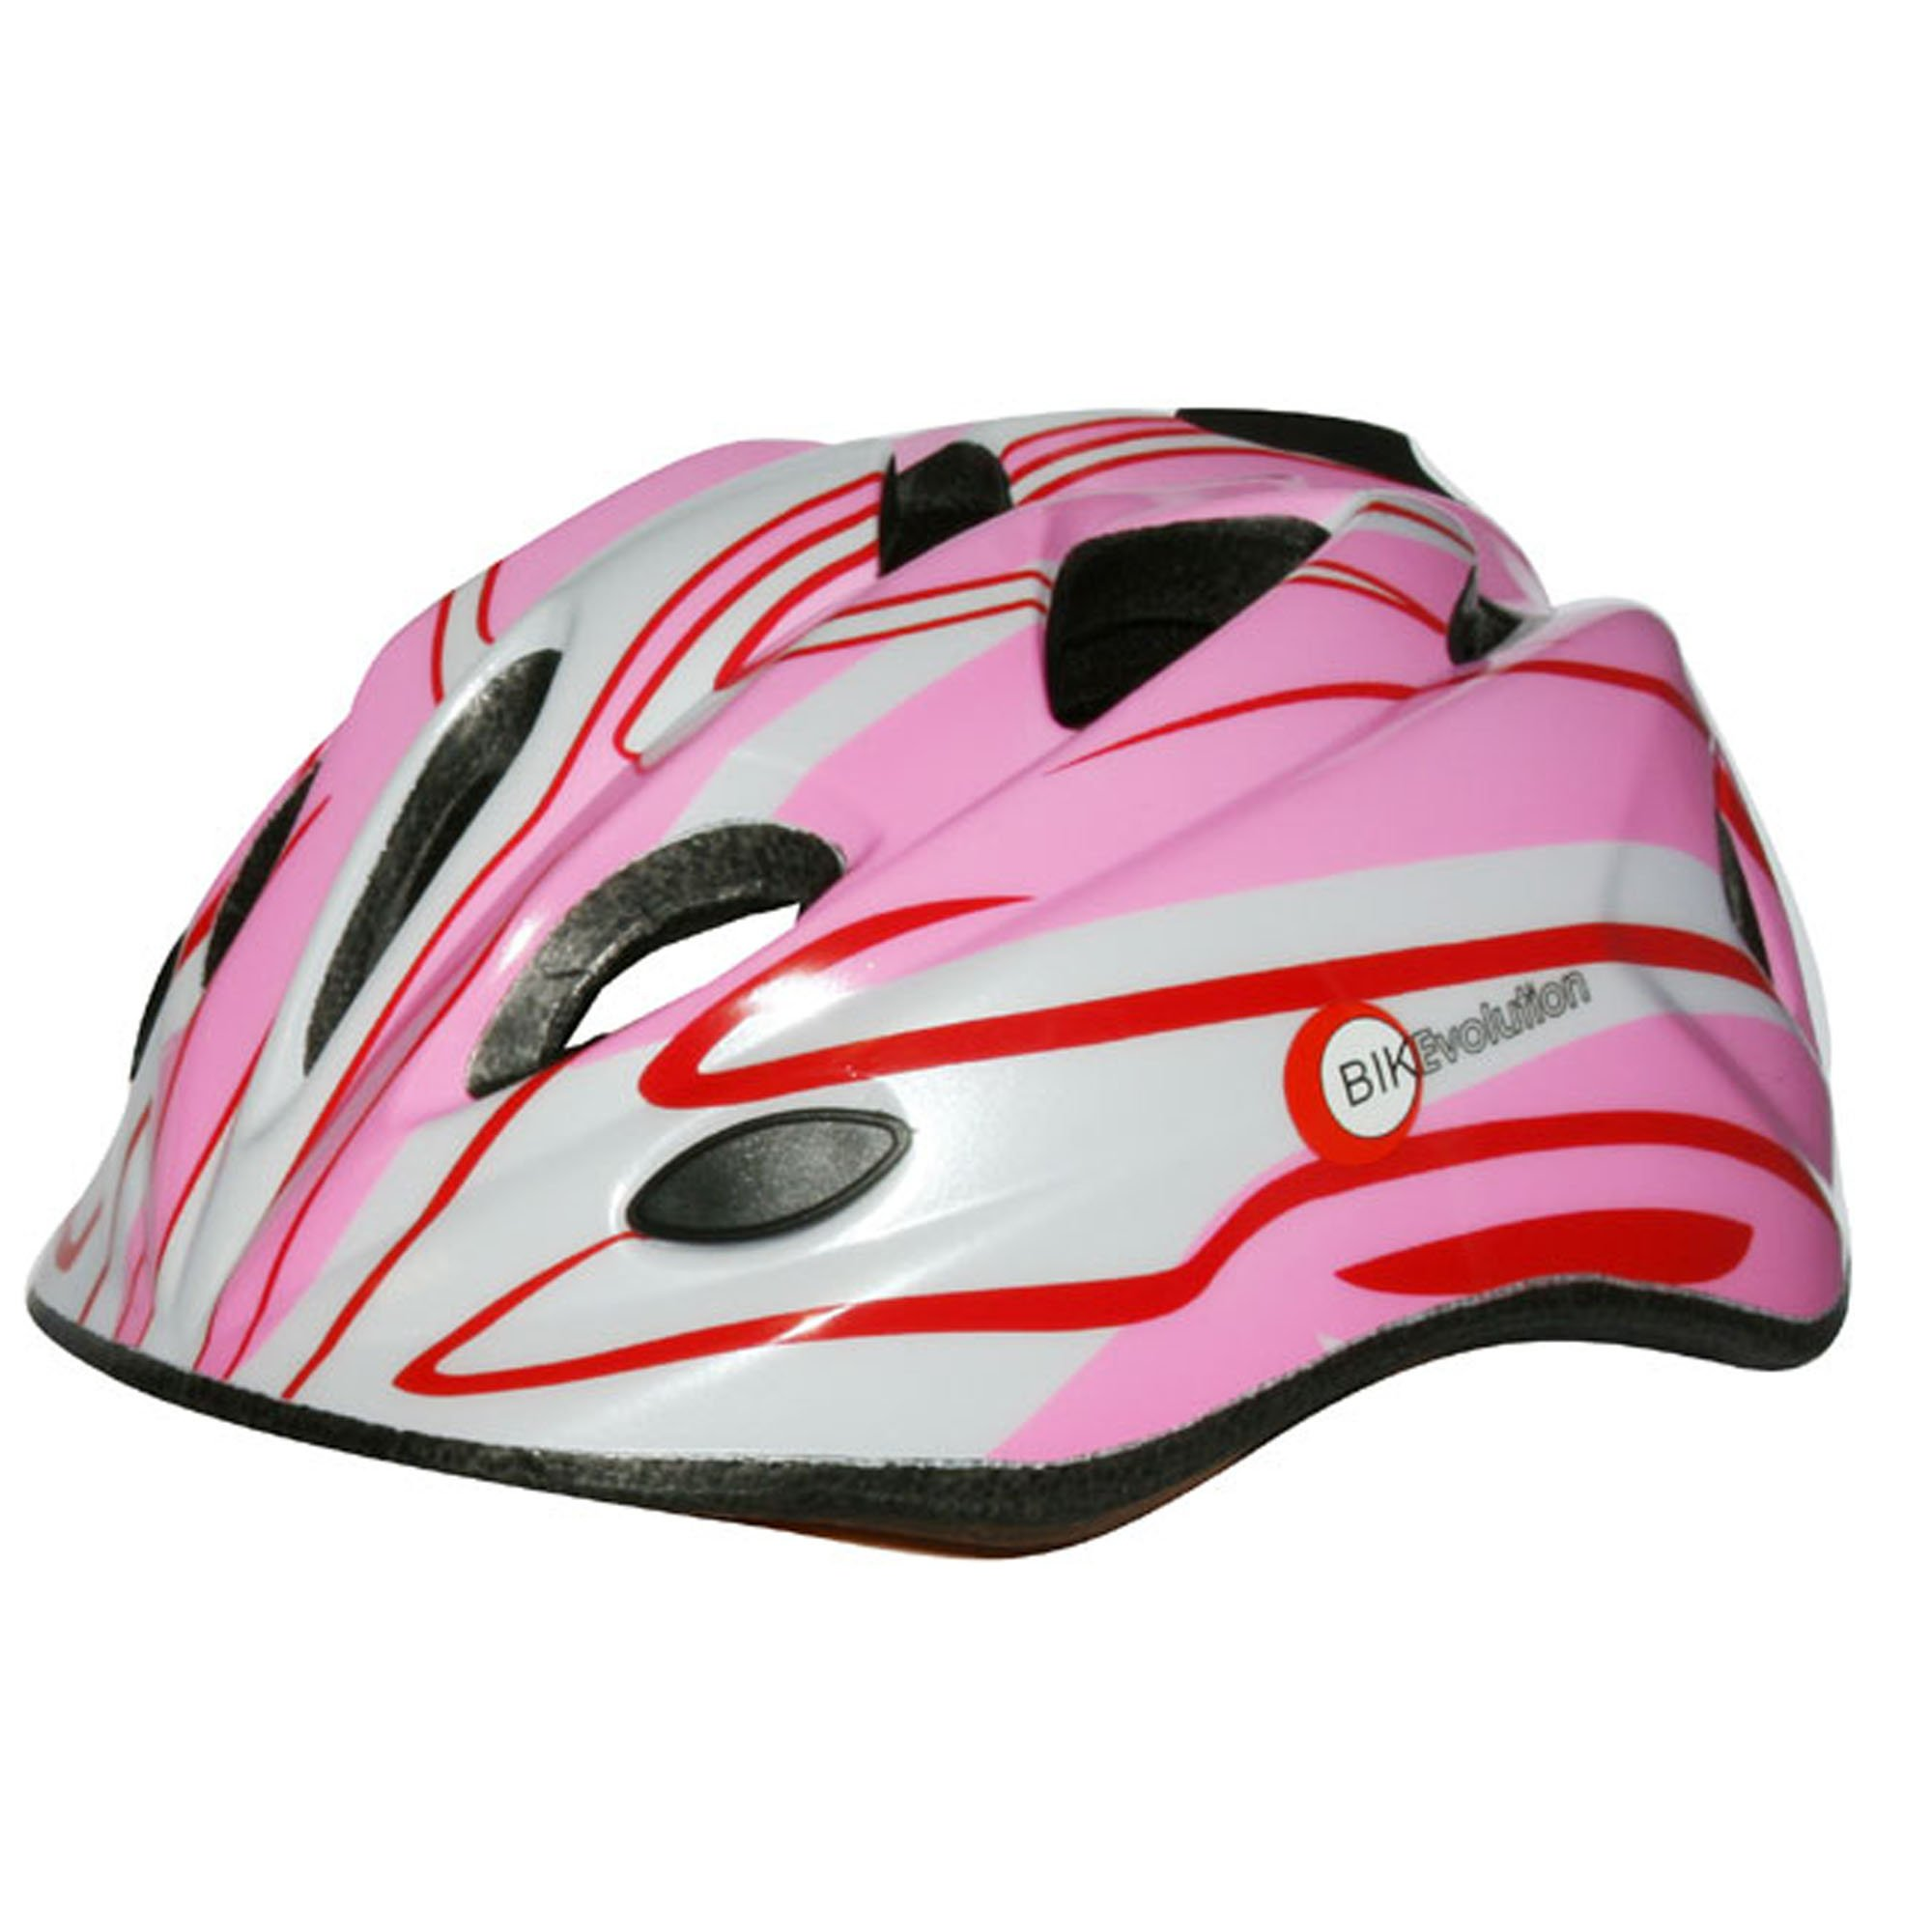 BIKEVOLUTION Casco Ciclo Bimbo MB6-5 In-Mold